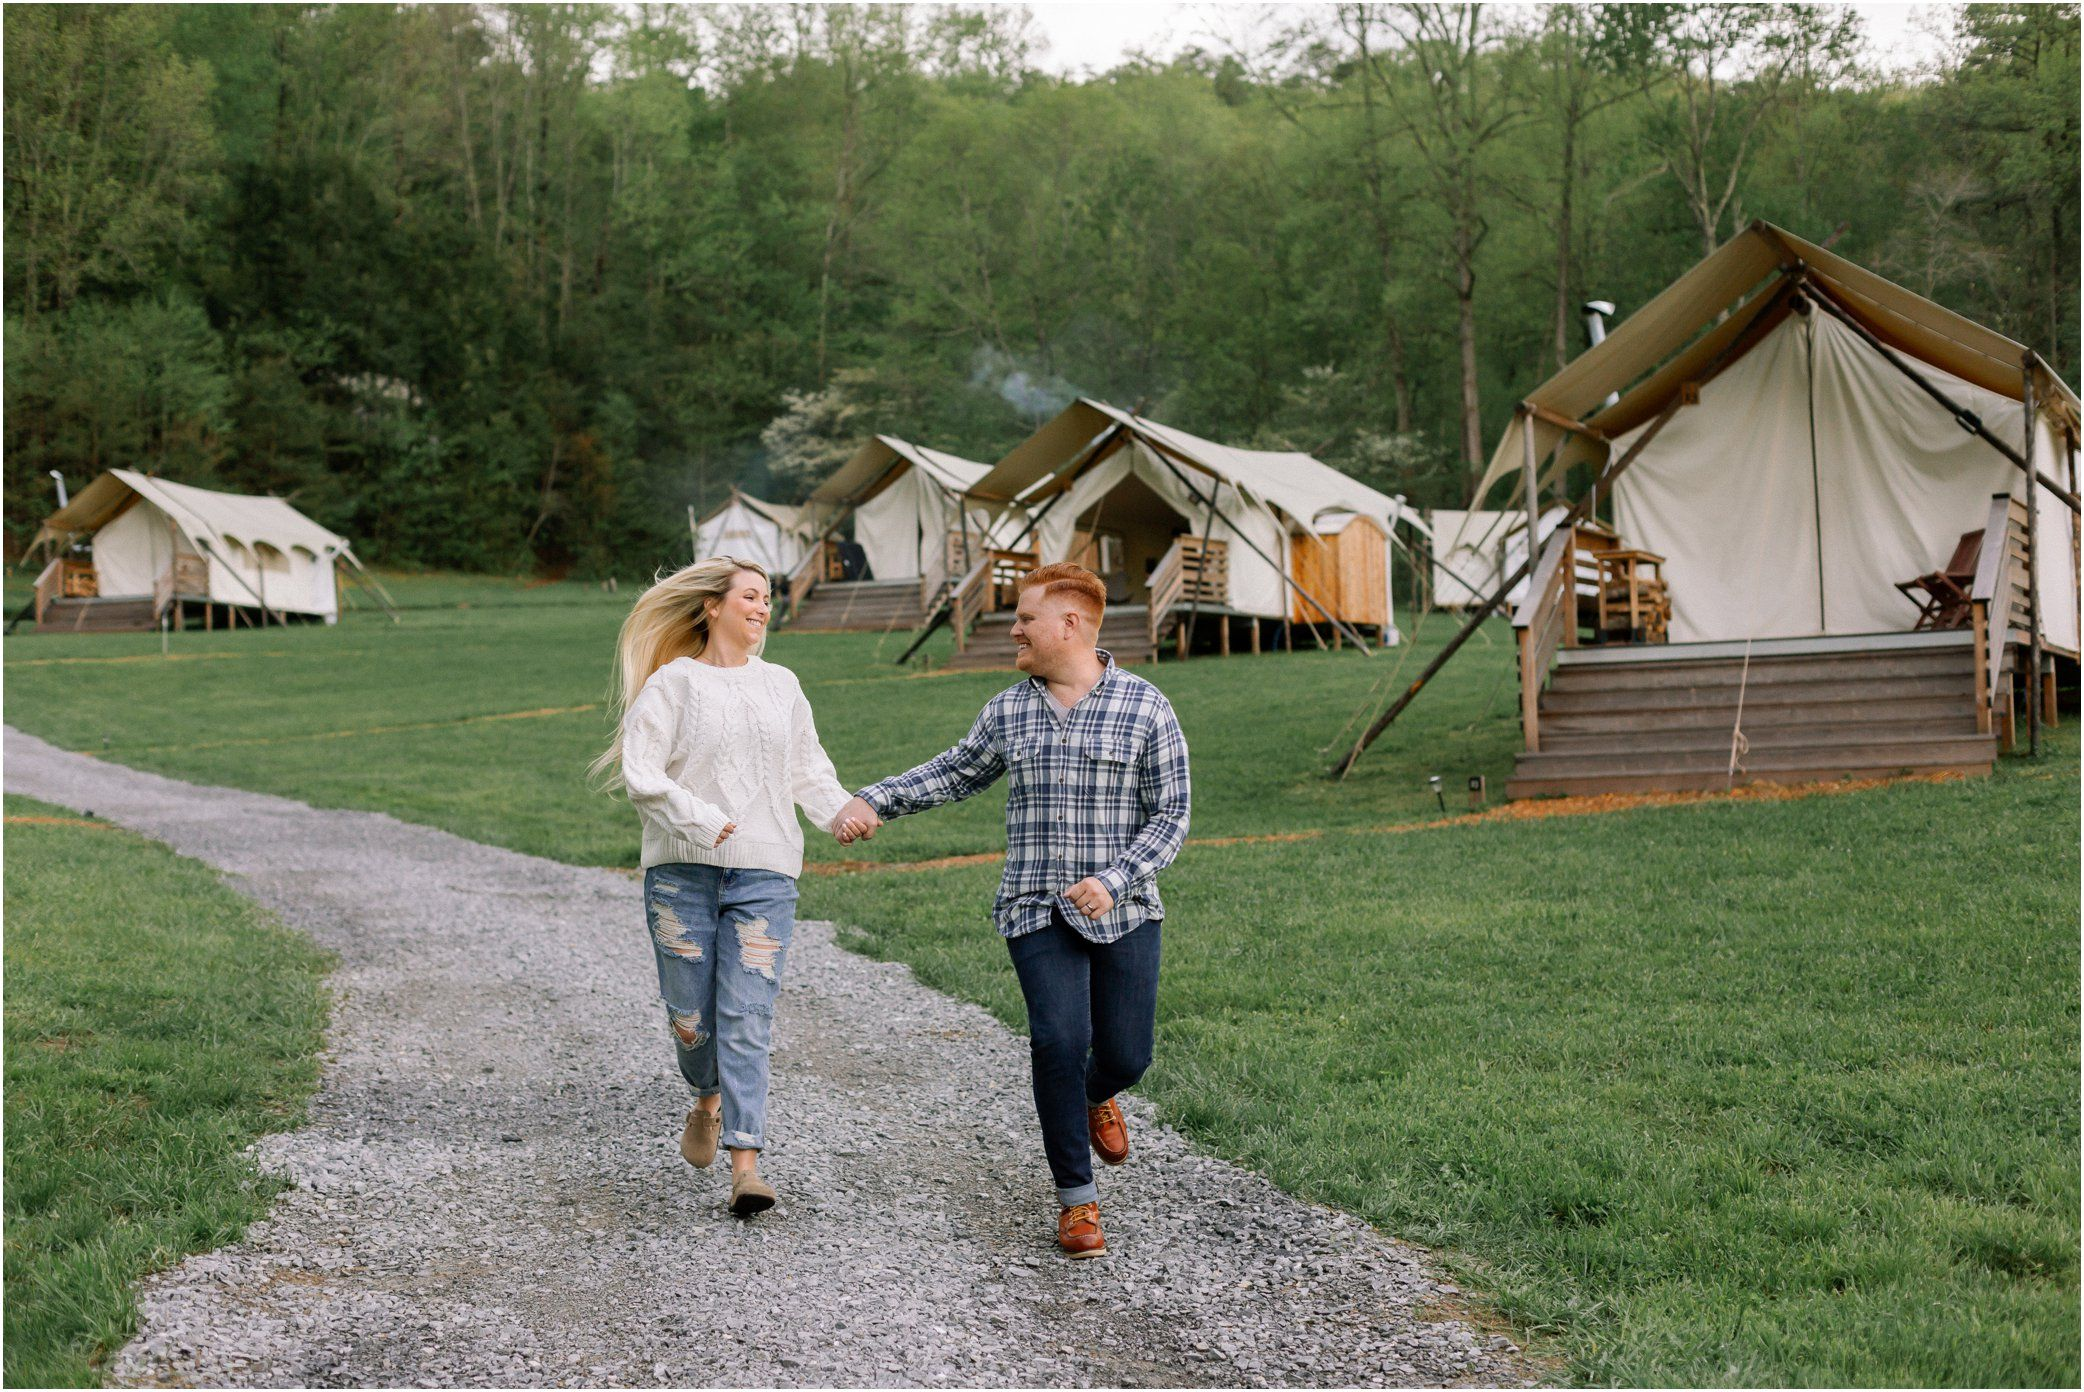 Outdoor glamping photos in the Great Smoky Mountains for ...